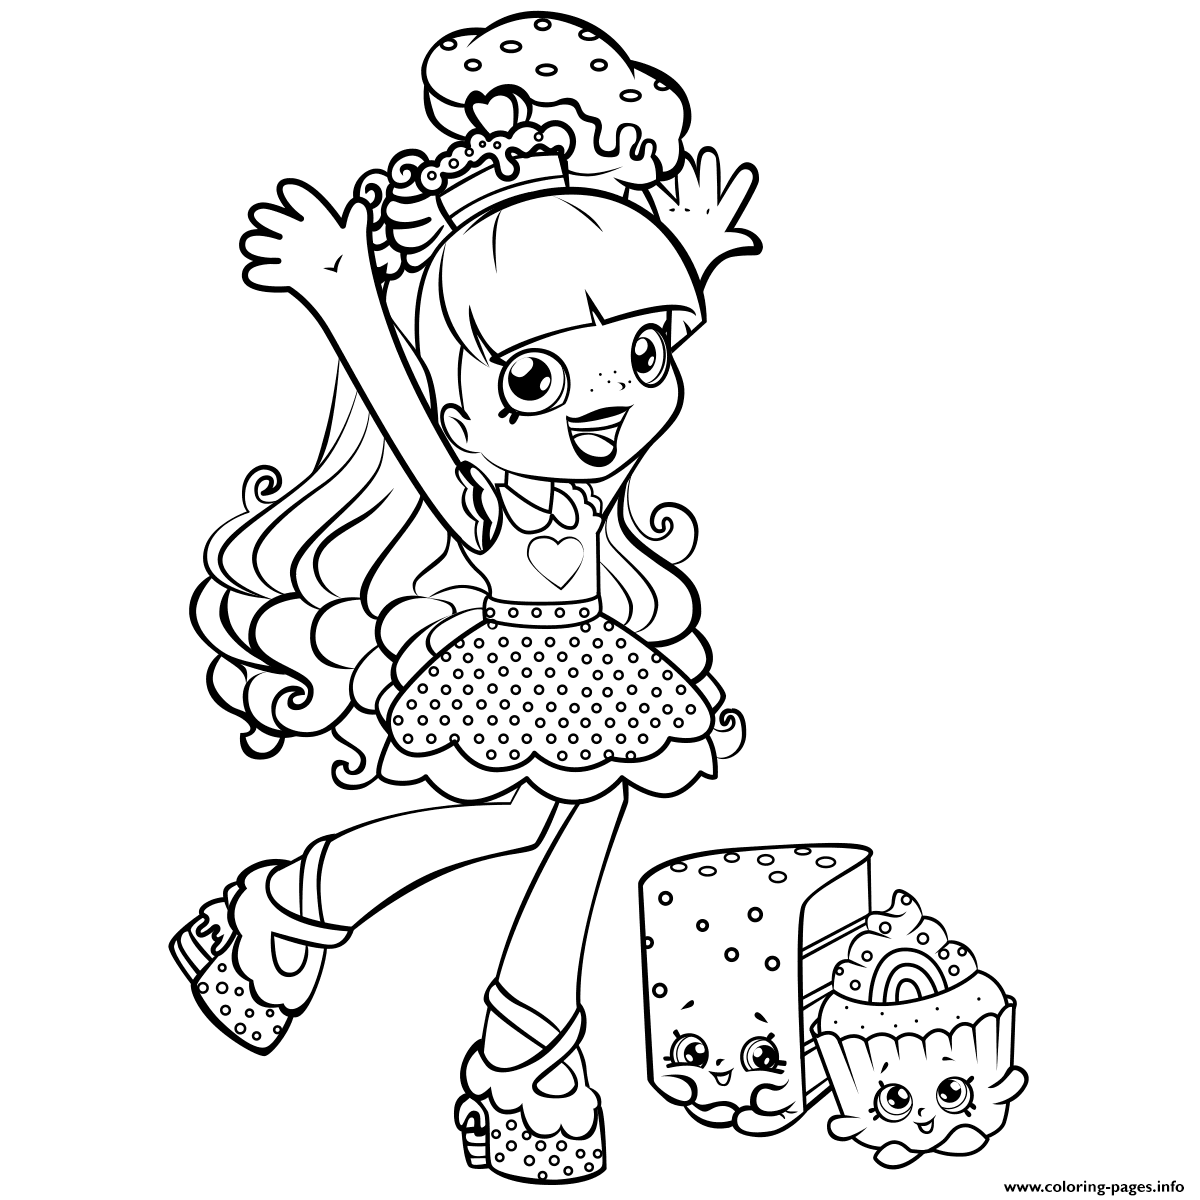 shopkin doll coloring pages - photo#13